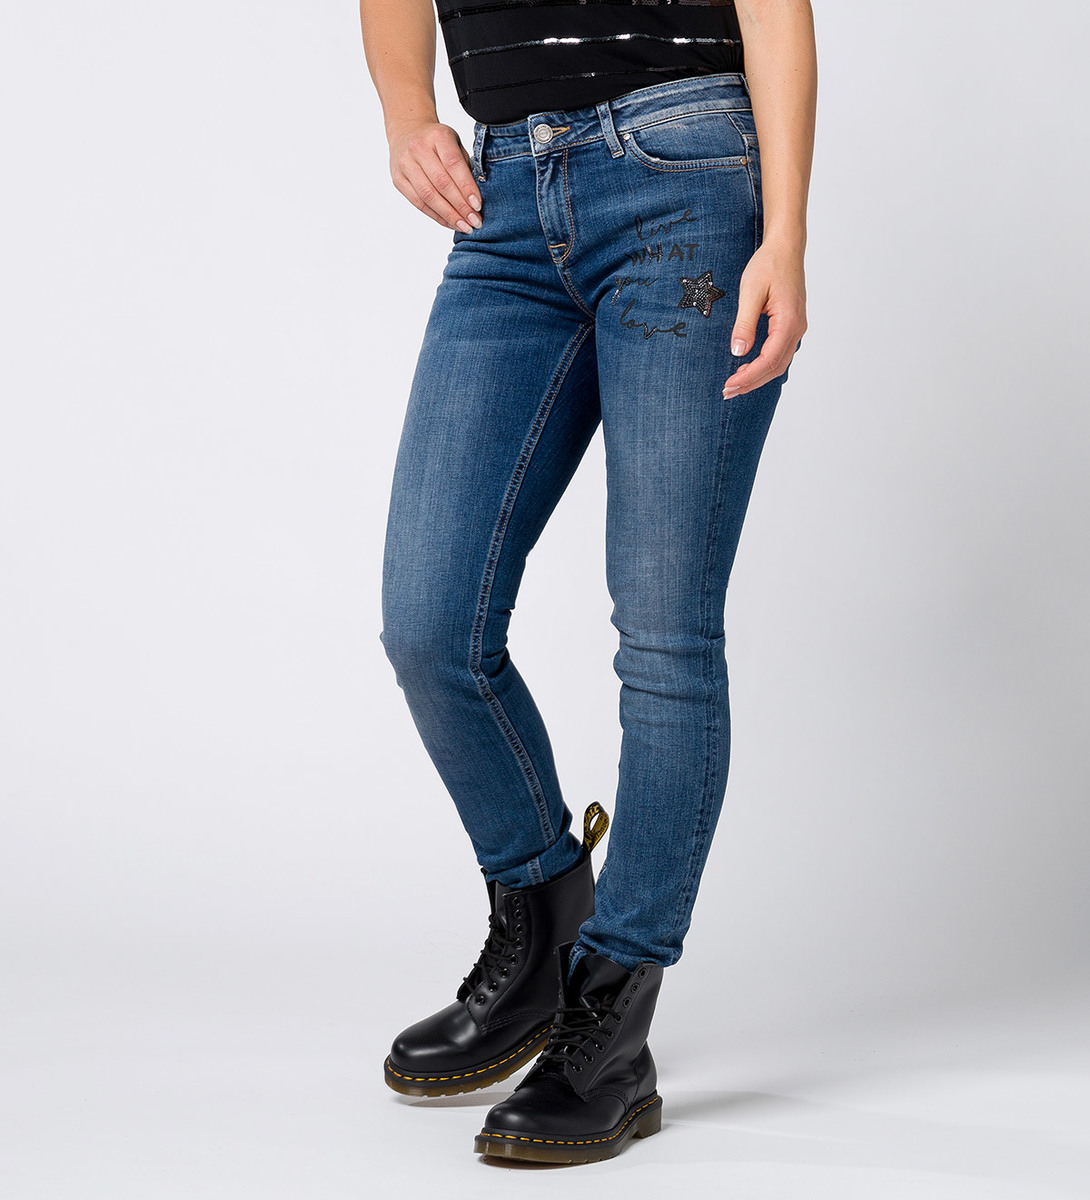 Size 32 in jeans is not equal to size 7. In general, size 32, which is the waist size in inches, is the same as a size 12 or 14 for American blue jeans. A size 7 falls at an equivalent size of about 28 or